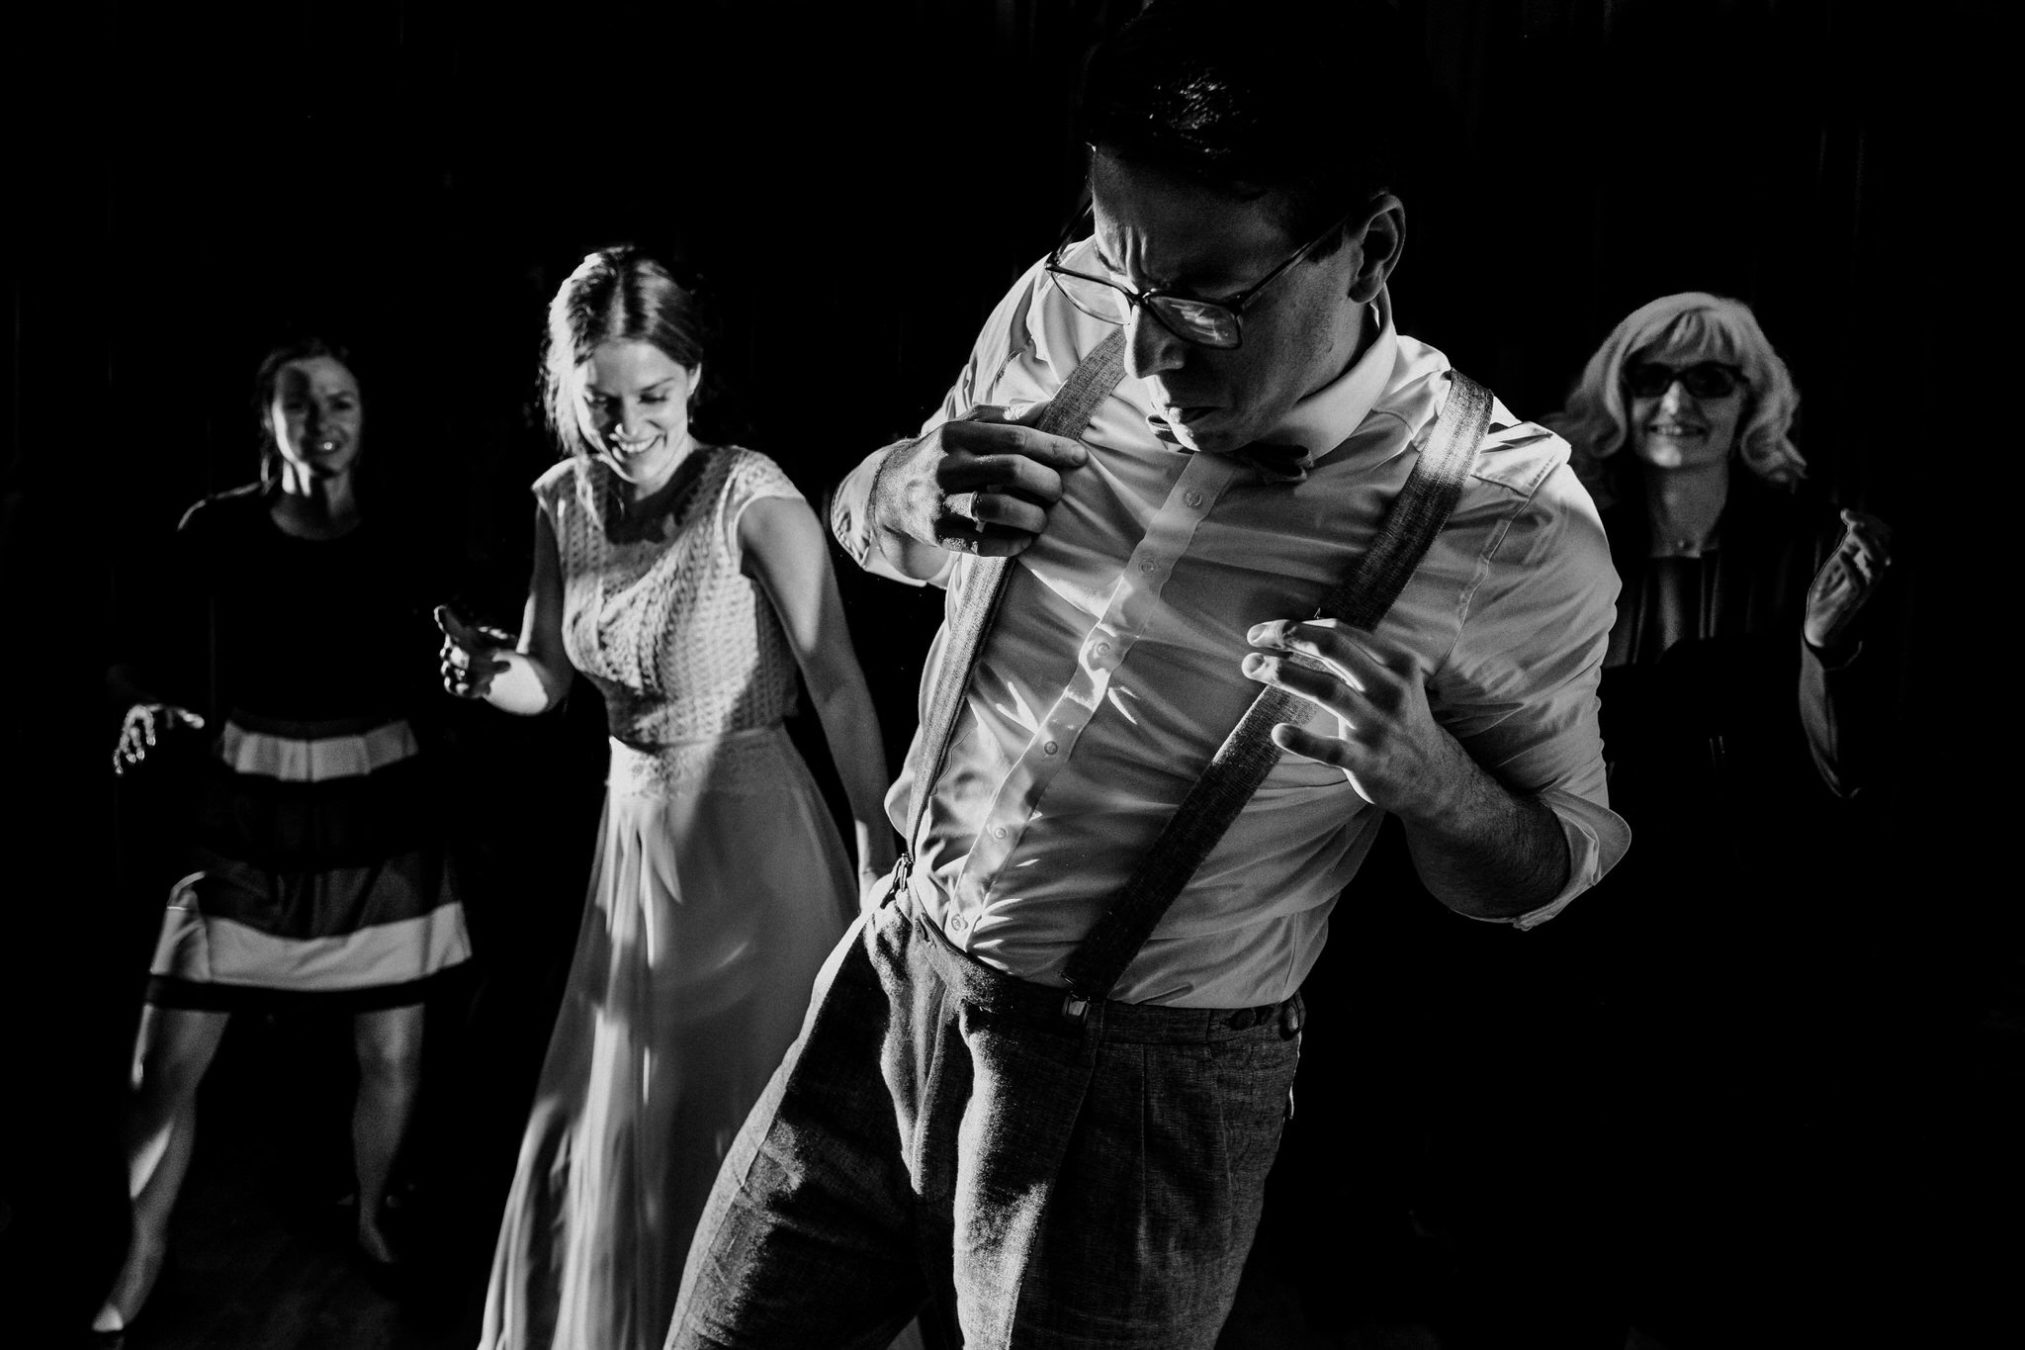 dancing wedding photos